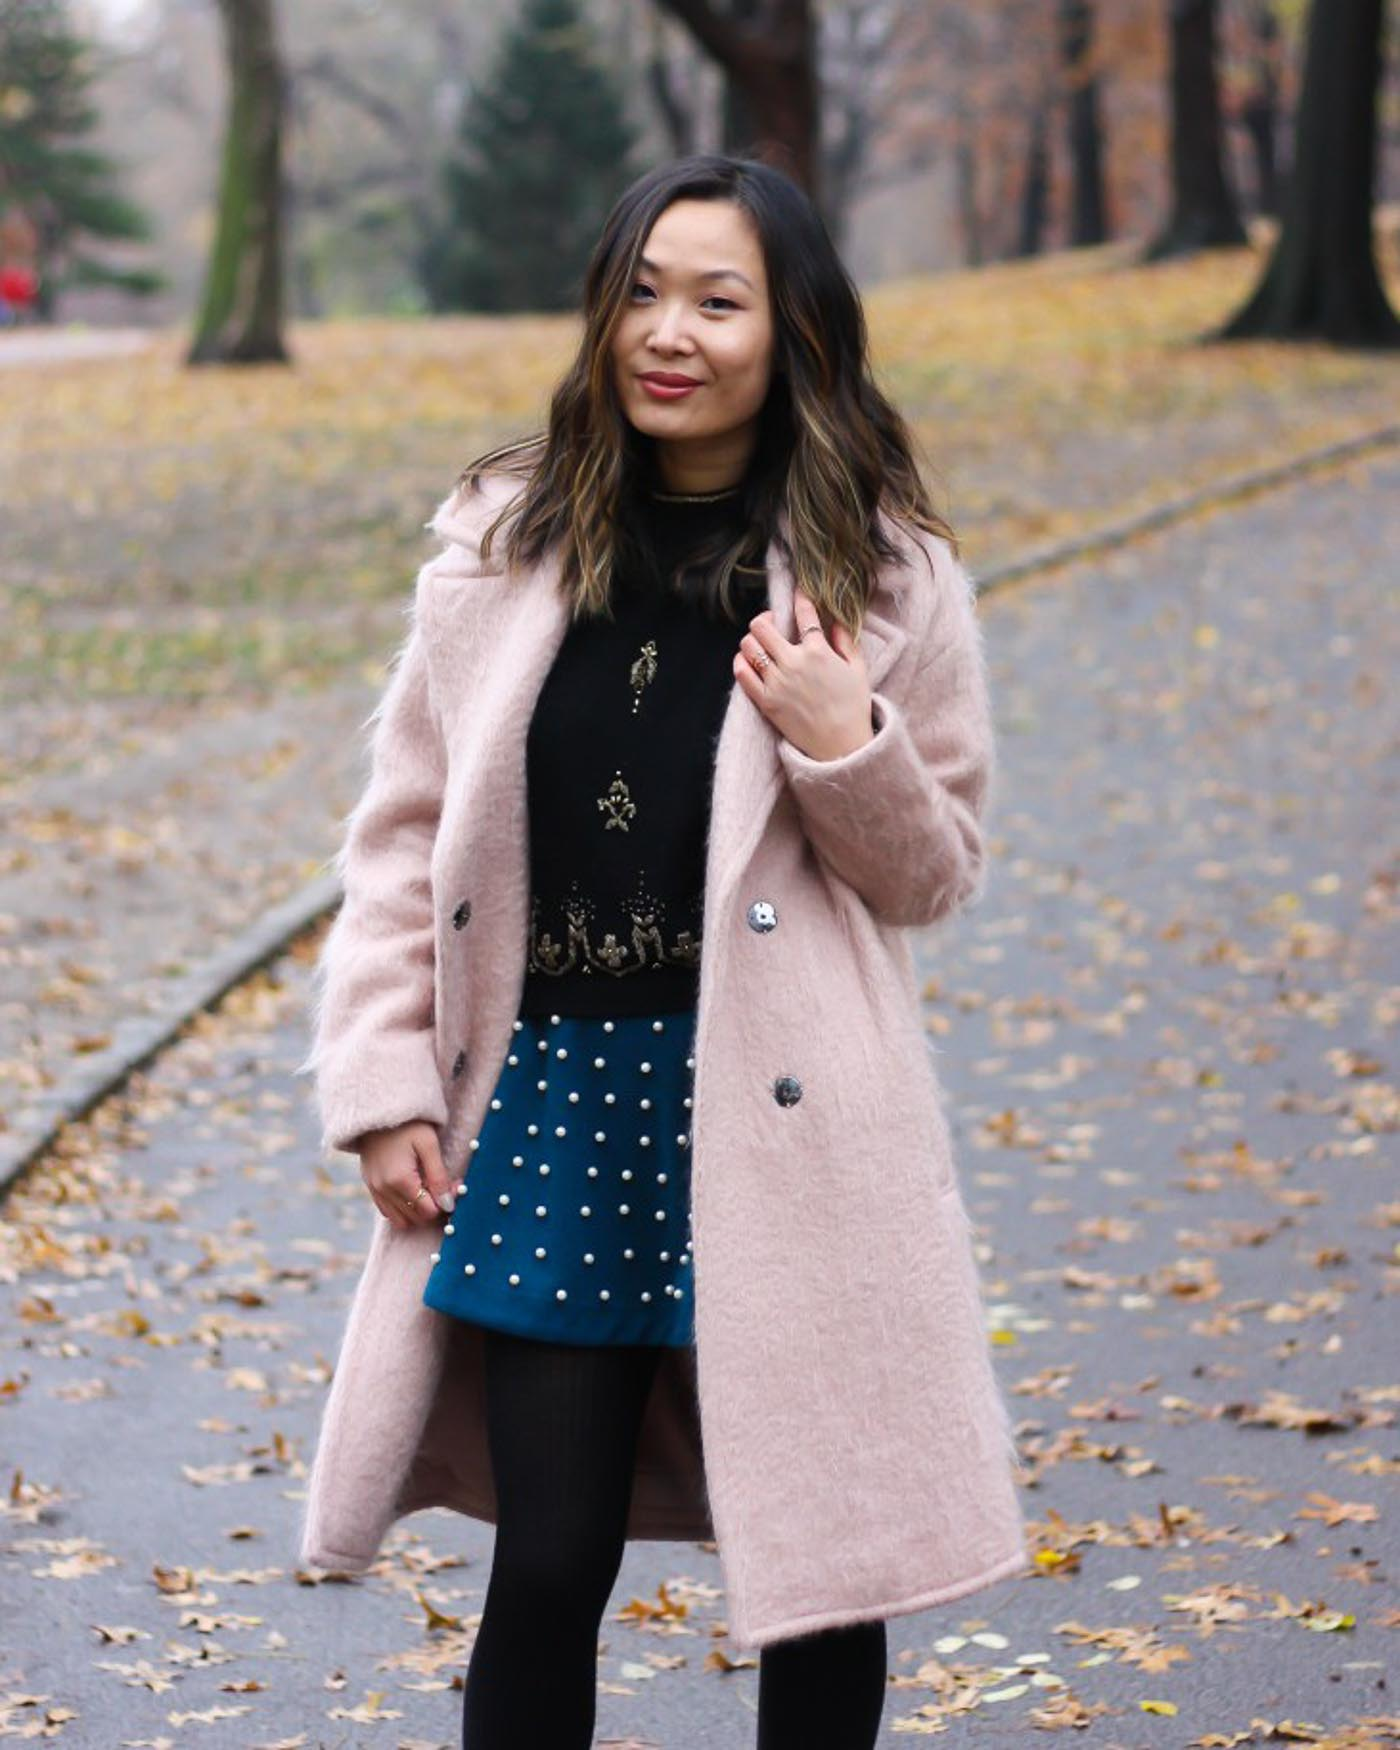 blush pink coat for winter - The Blog Societies